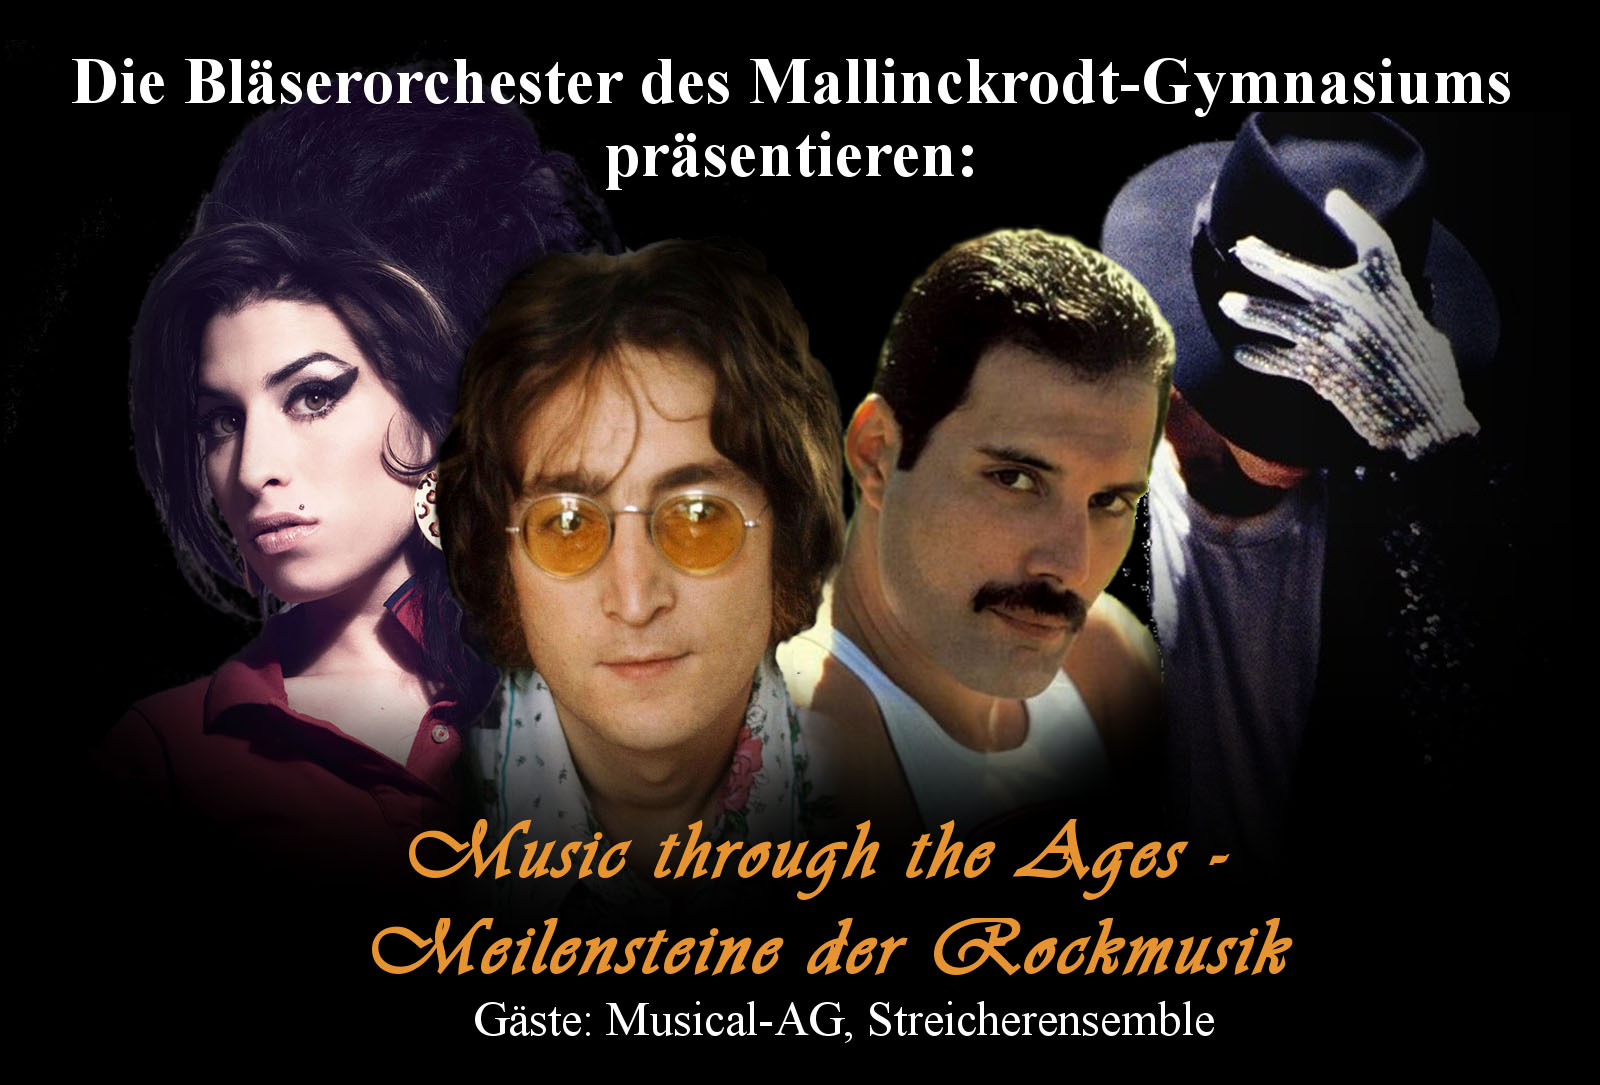 Music through the Ages: Meilensteine der Rockmusik im Forum